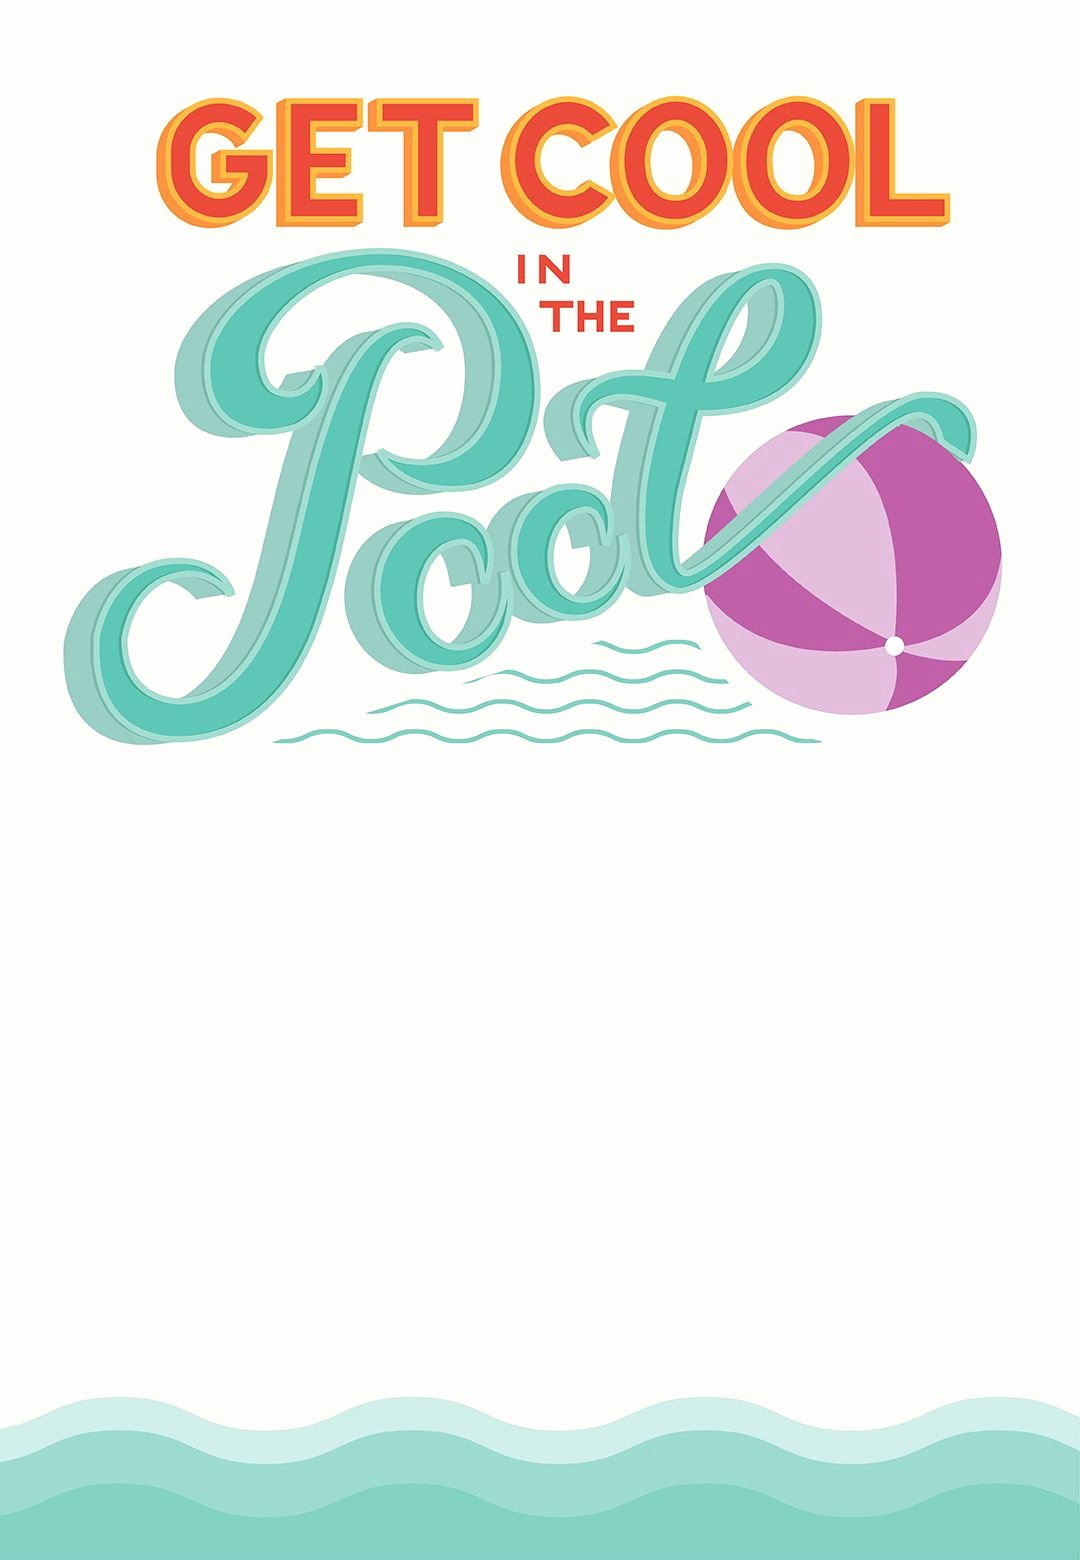 Pool Party Invitations Template Luxury Pool Party Free Printable Party Invitation Template